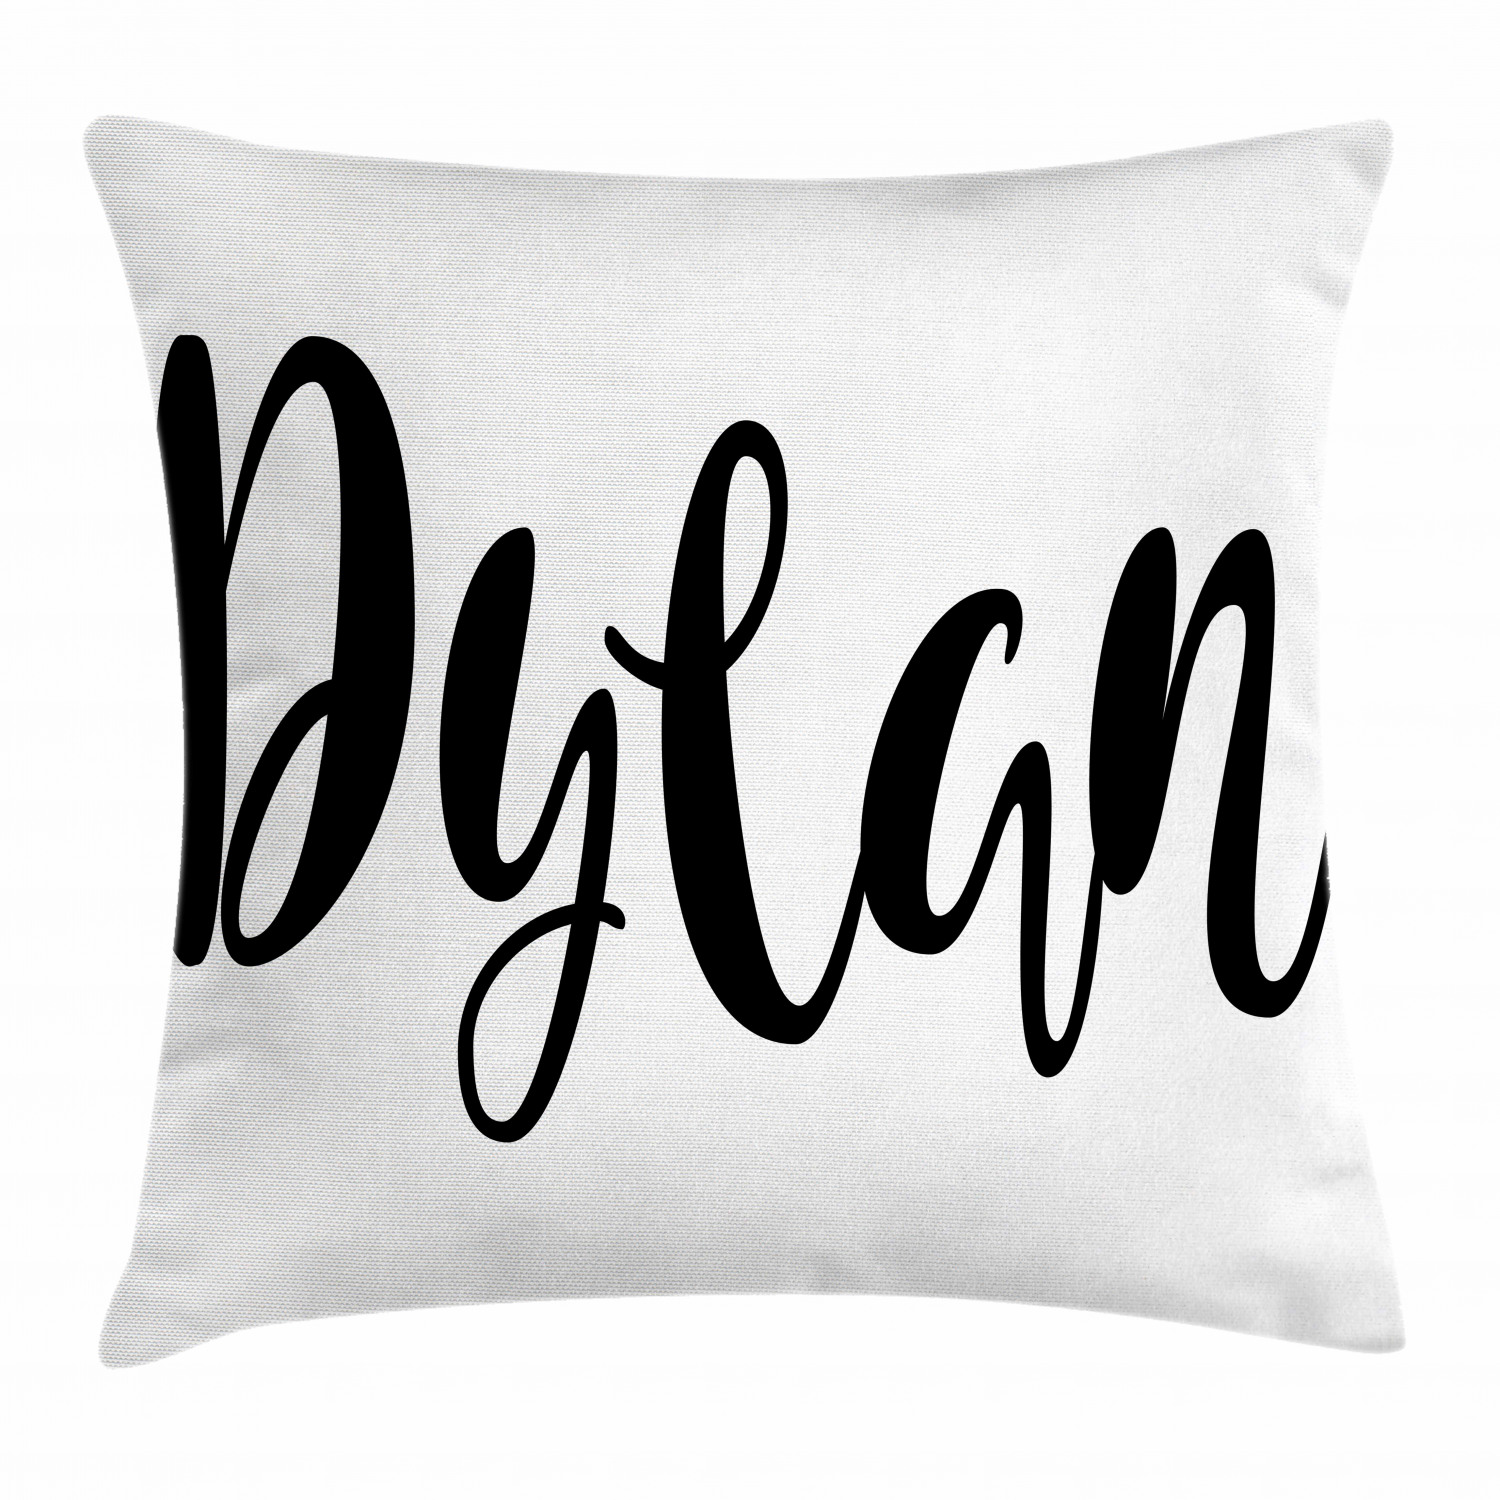 Dylan Throw Pillow Cushion Cover Monochrome Arrangement Of Letters Stylized Font Design Hand Drawn Typography Decorative Square Accent Pillow Case 18 X 18 Inches Black And White By Ambesonne Walmart Com Walmart Com